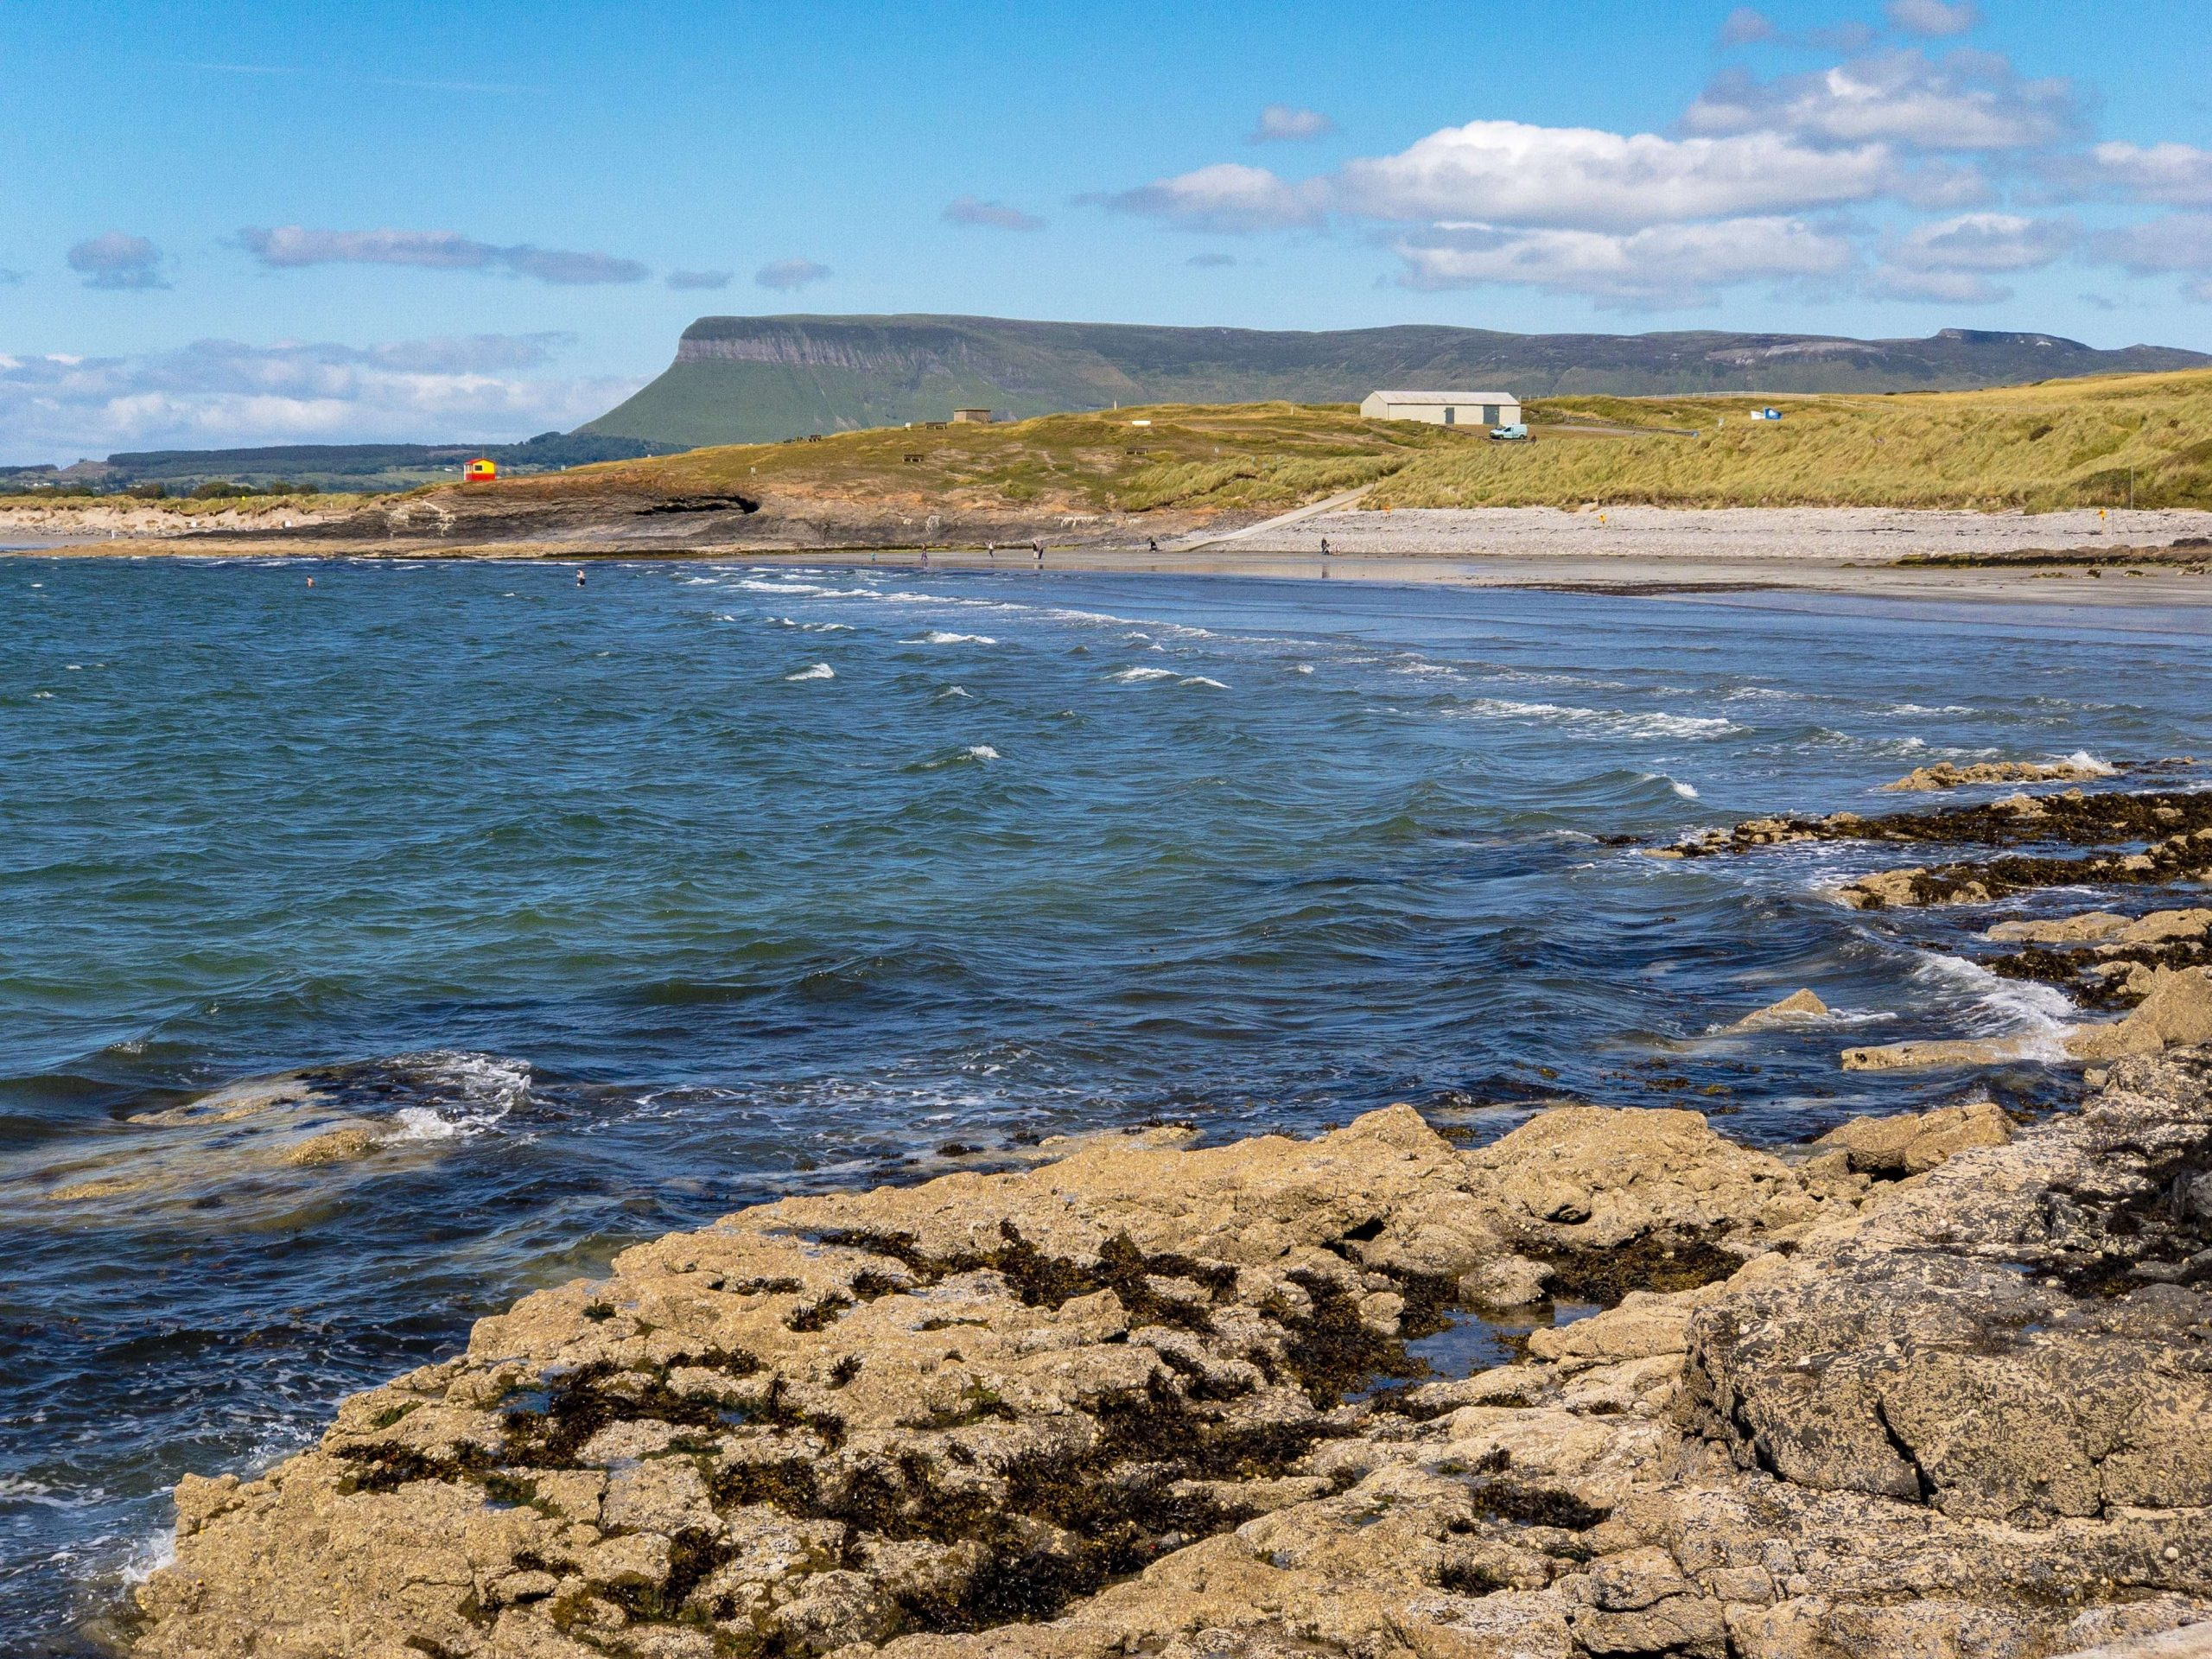 Sligo Beach Receives Blue Flag Award